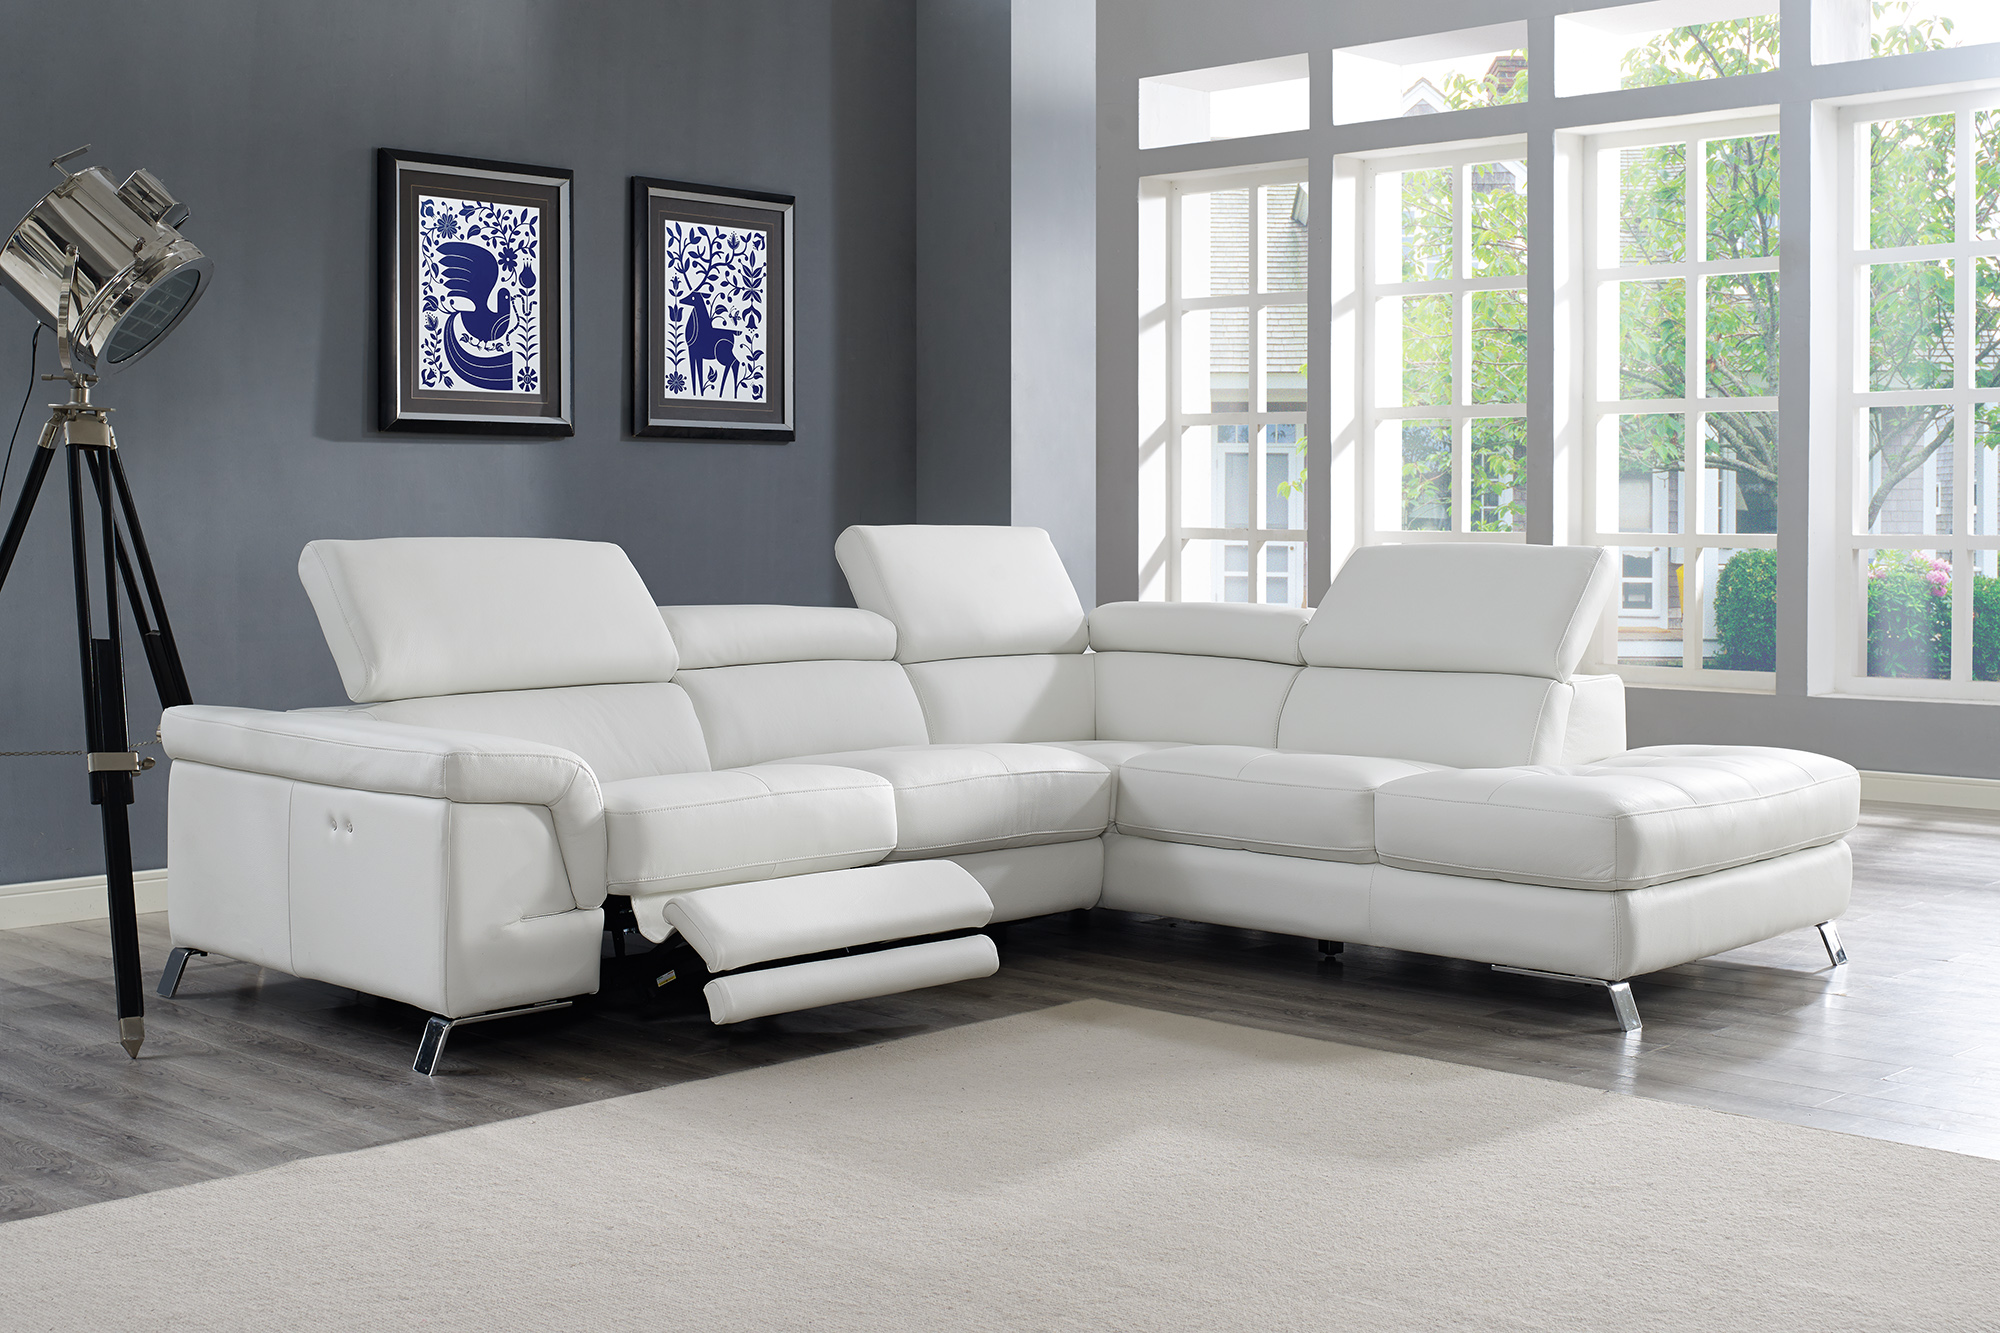 Stupendous Real Italian Leather Sectional With Recliner Footrest Ibusinesslaw Wood Chair Design Ideas Ibusinesslaworg